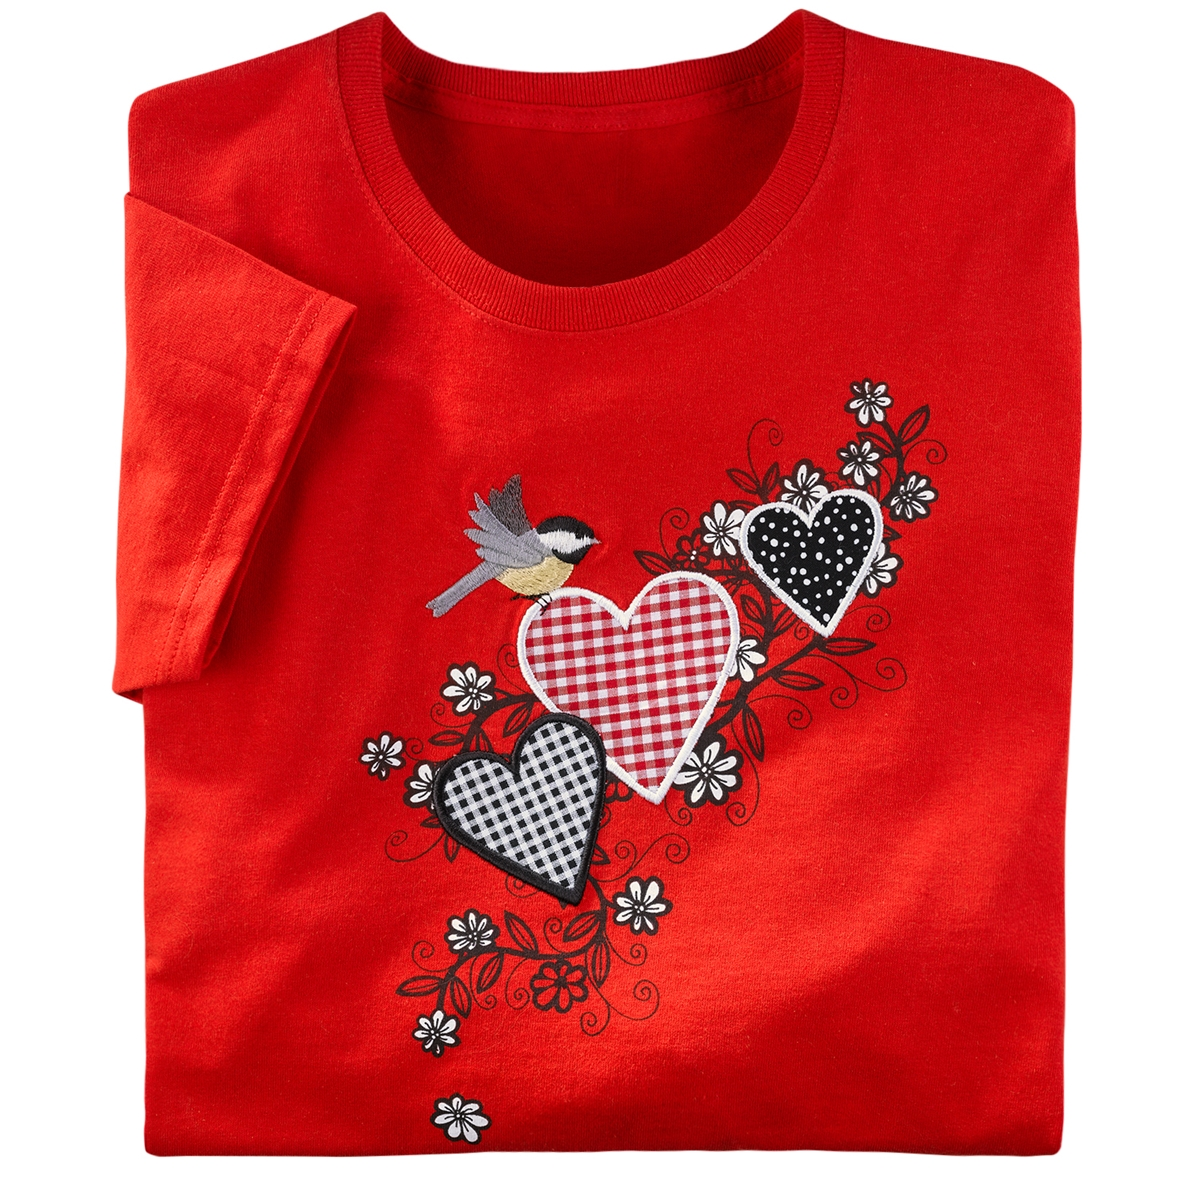 Chickadee and Hearts Tee